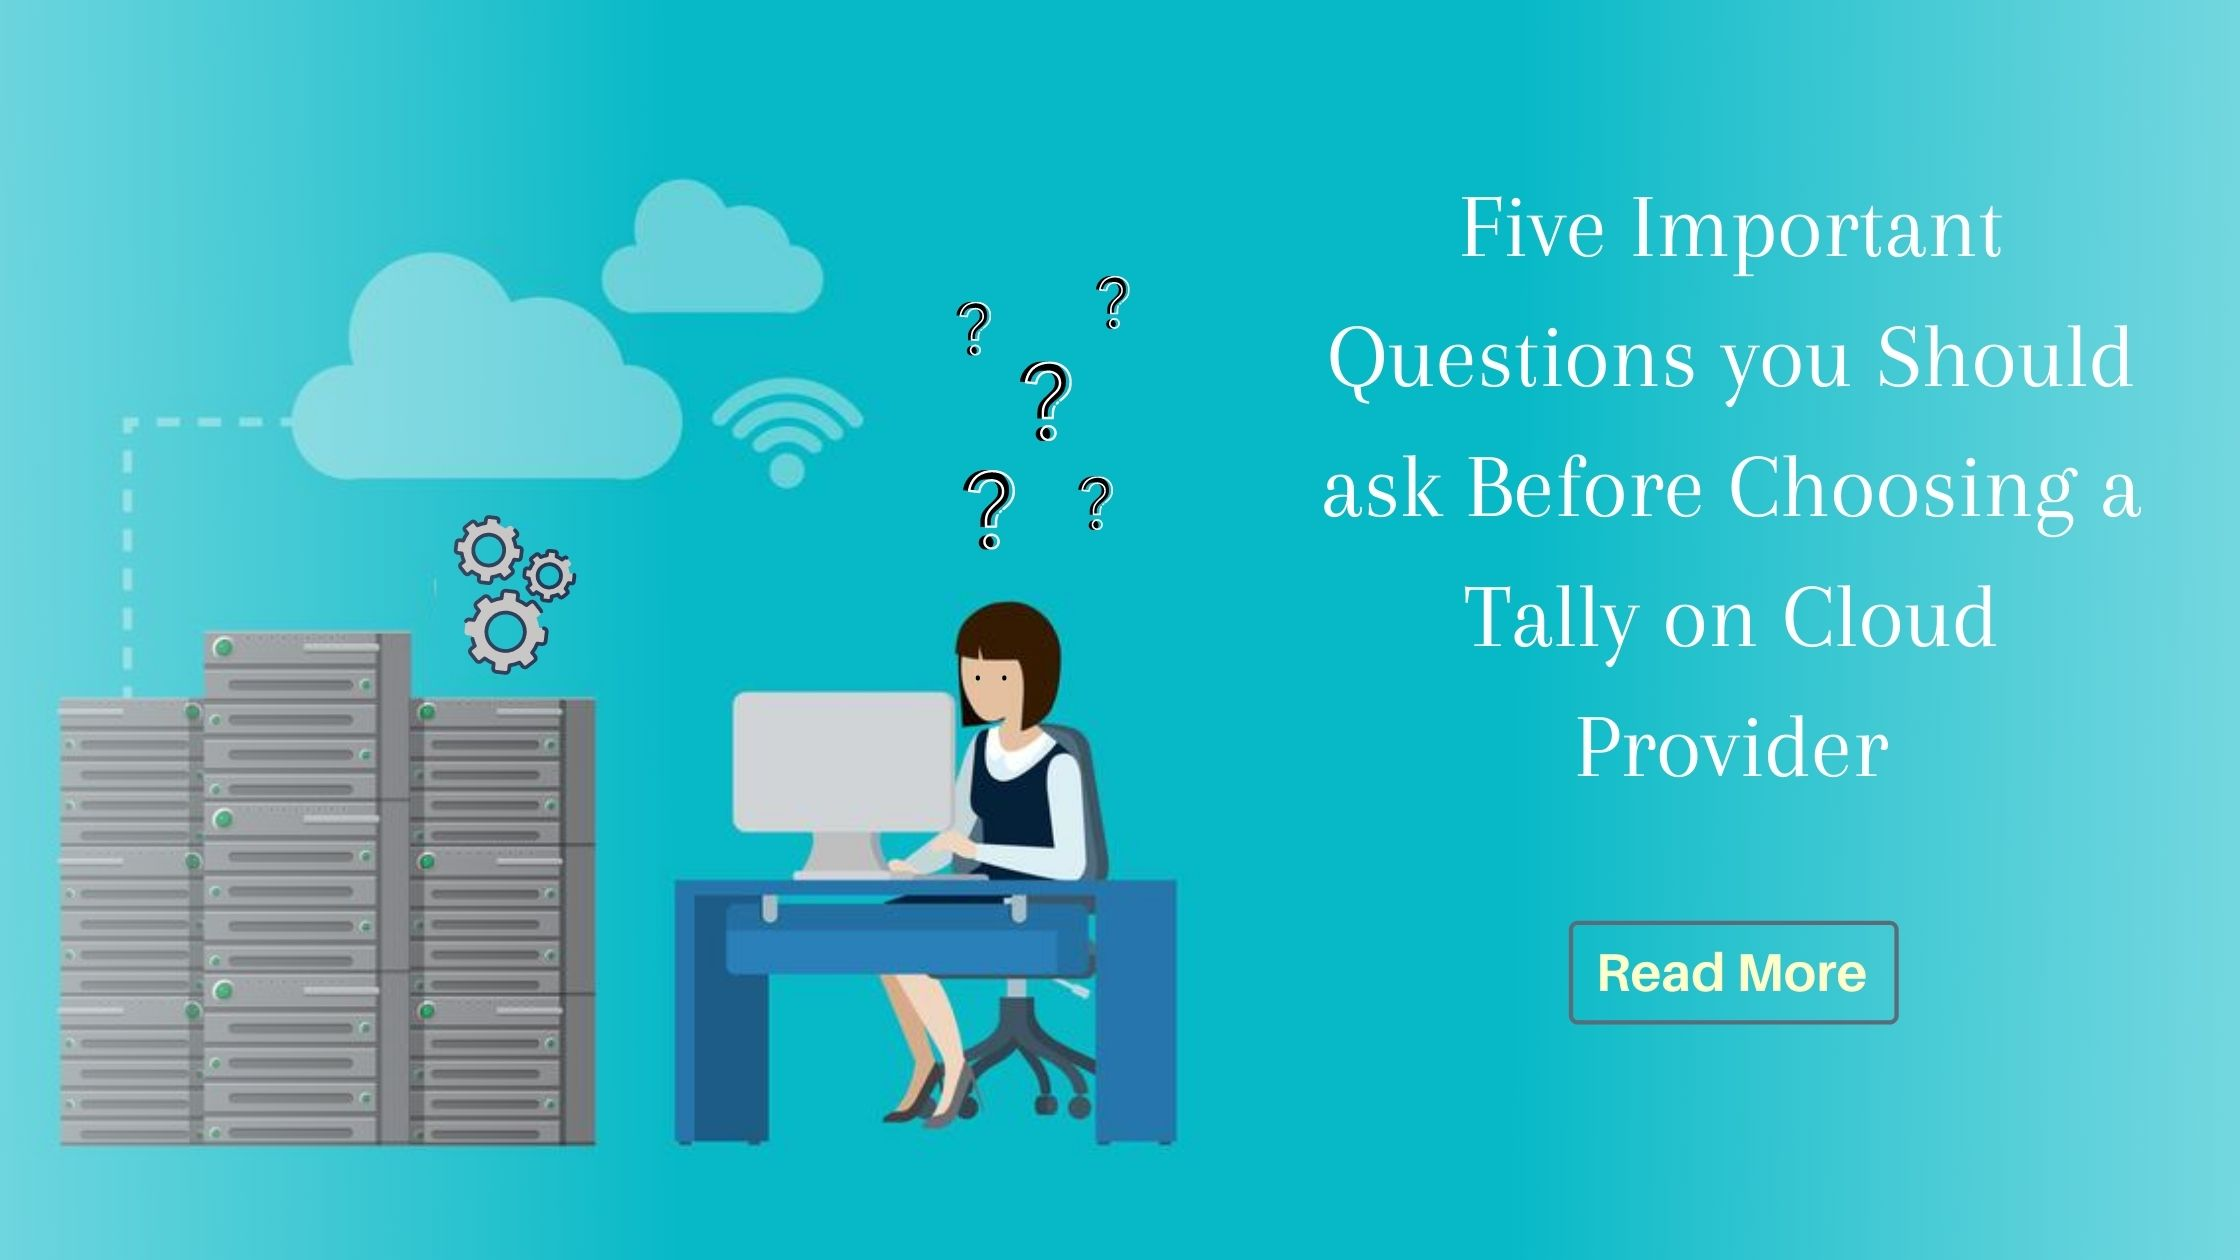 Questions for Tally on cloud provider